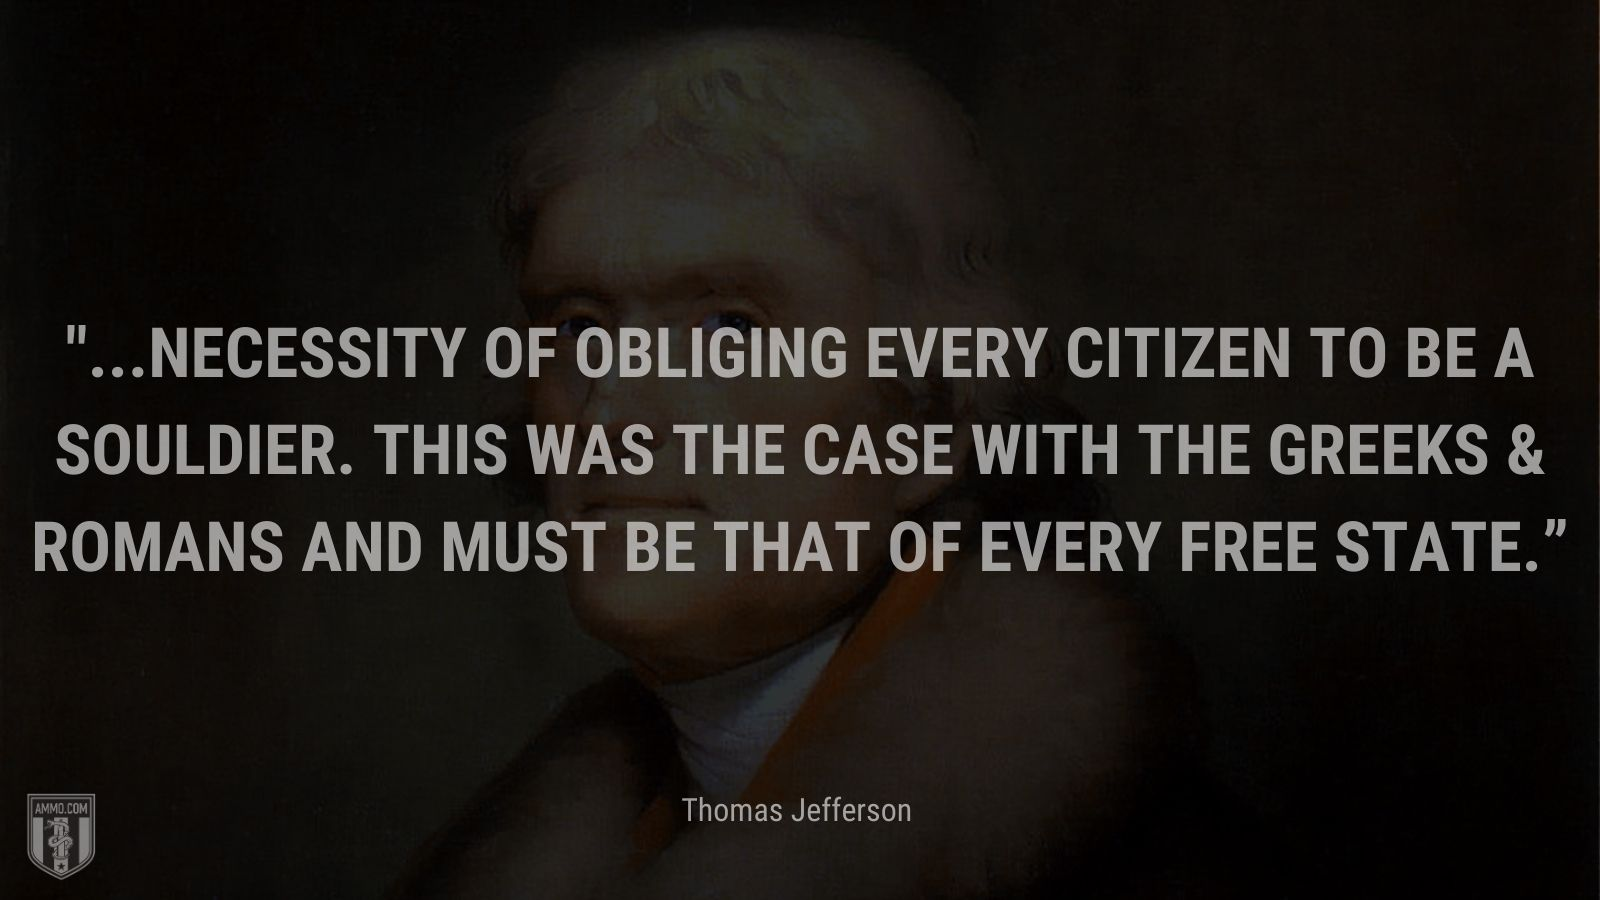 """""""...necessity of obliging every citizen to be a souldier. this was the case with the Greeks & Romans and must be that of every free state."""" - Thomas Jefferson"""